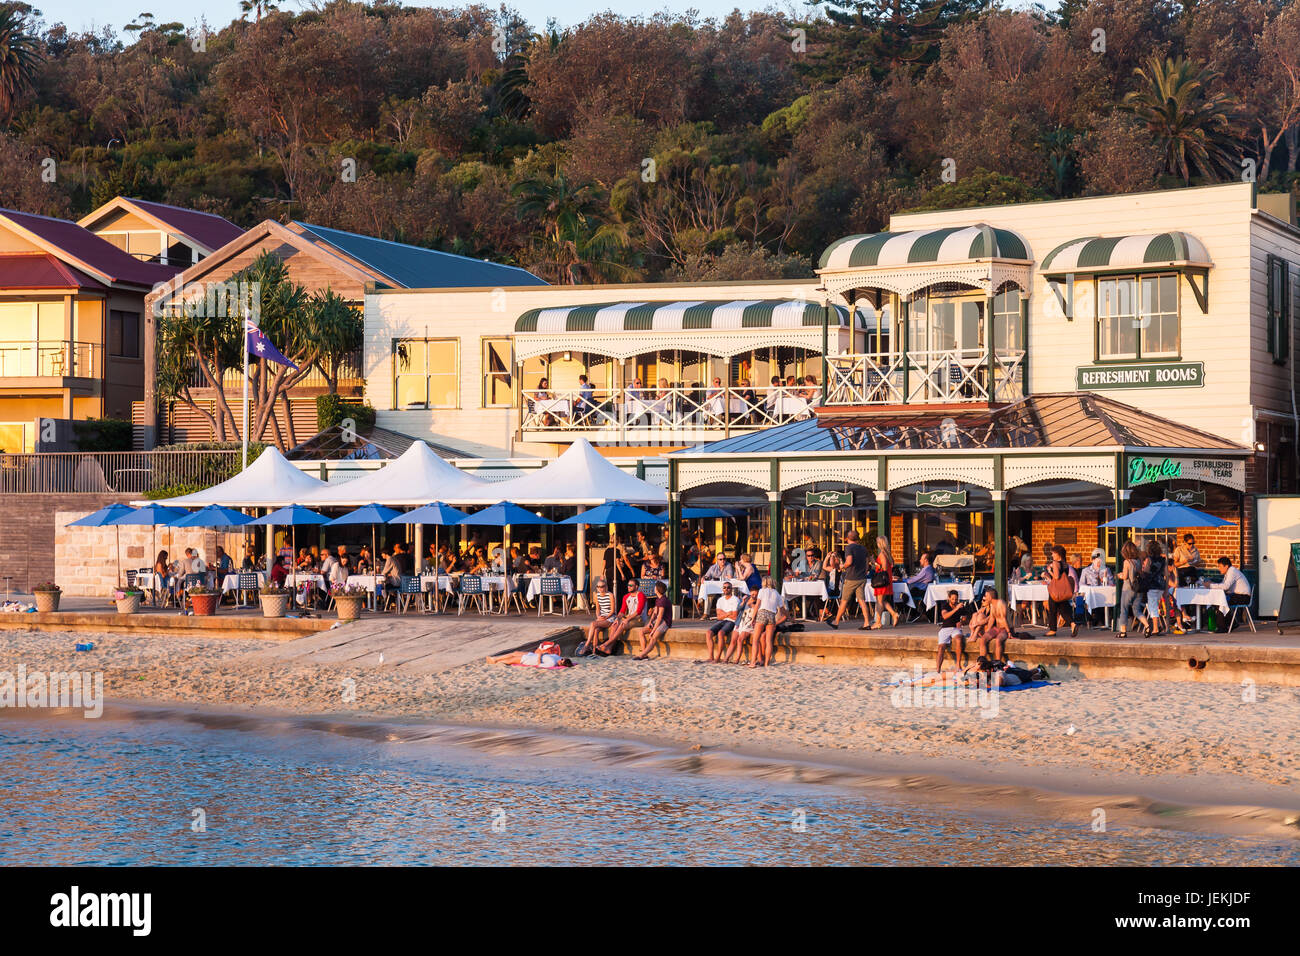 Shots of the famous Doyles Seafood Restaurant, Watsons Bay, next to the Watsons Bay Hotel, Sydney, Australia - Stock Image